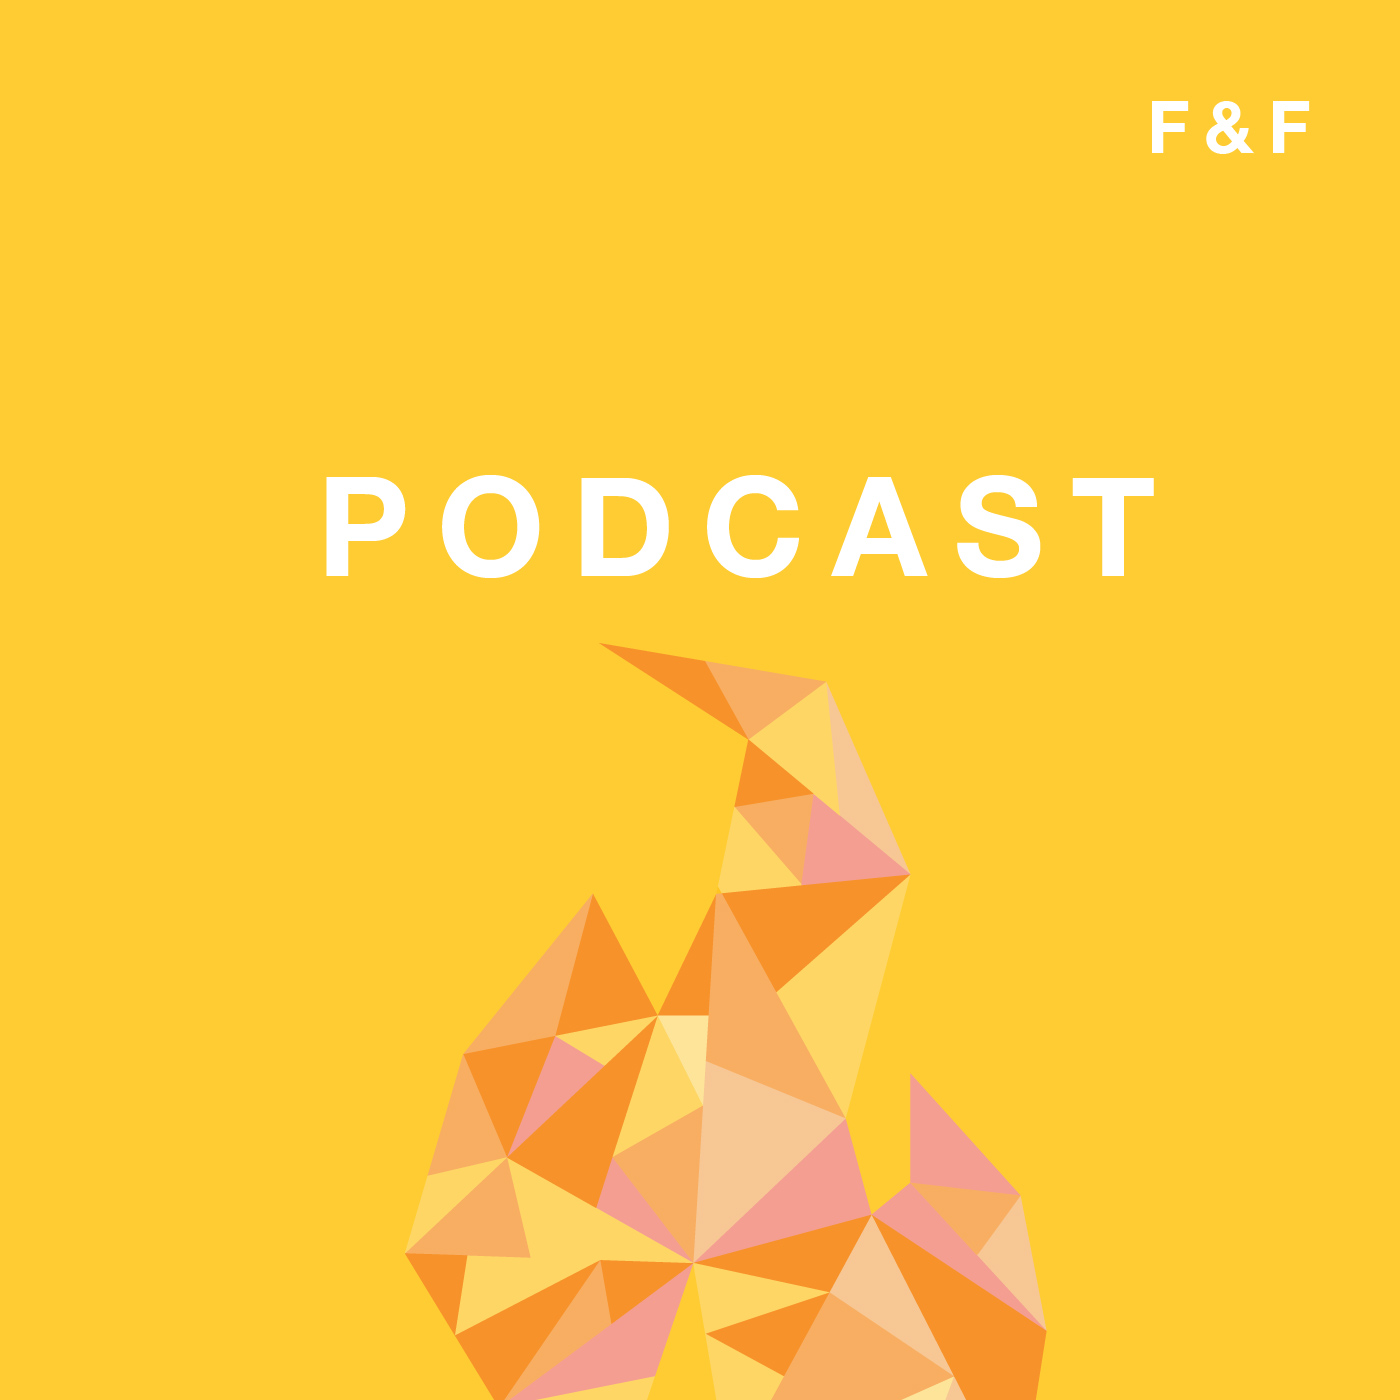 Podcasts - FF